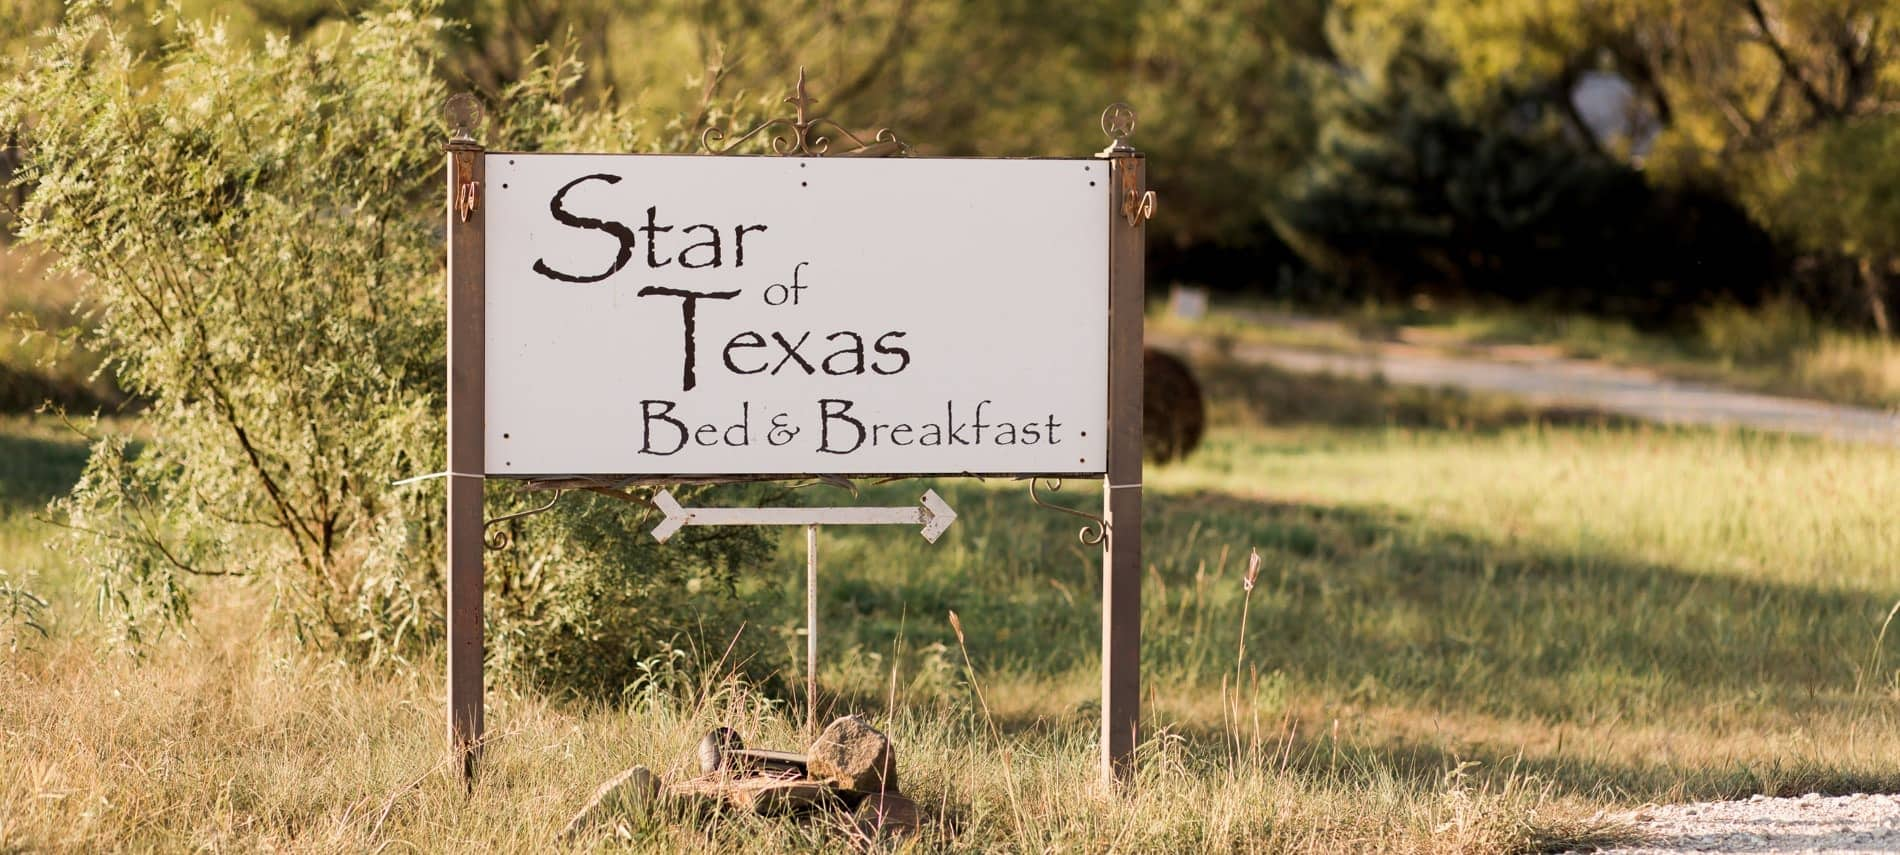 Exterior white sign with wood frame that says Star of Texas Bed & Breakfast surrounded by grass and trees